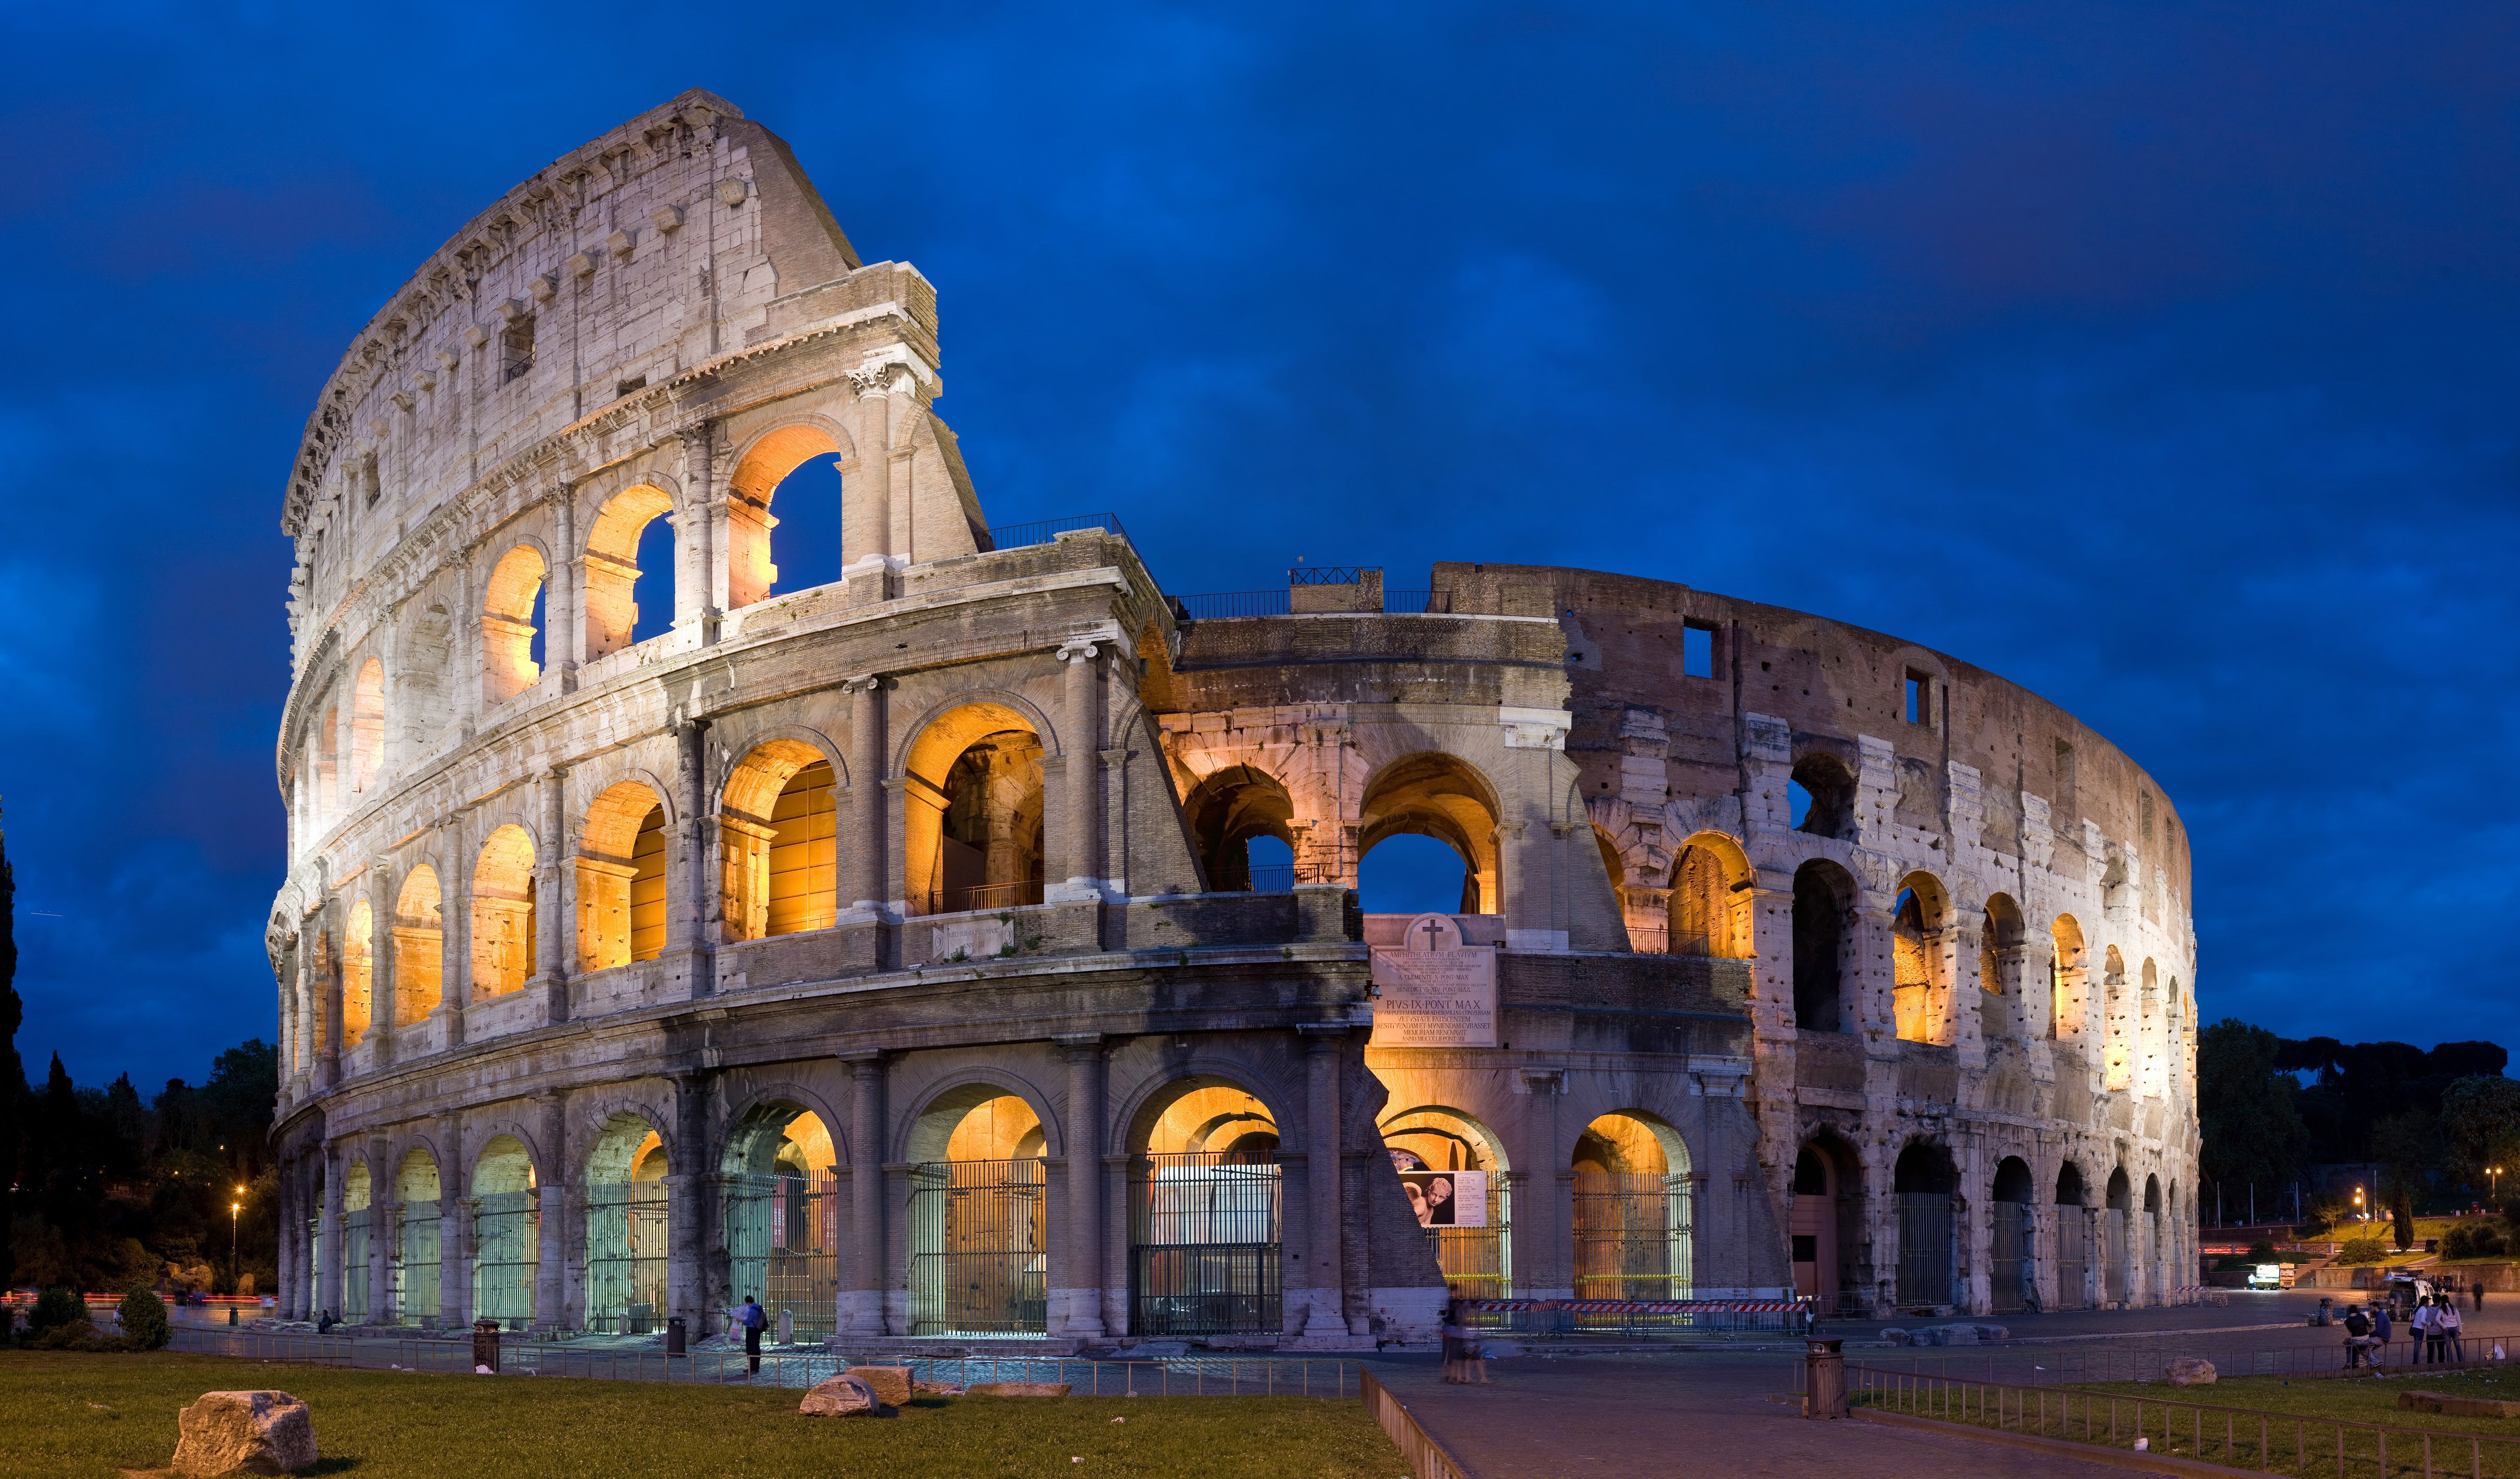 The Colosseum in Rome, built ca. 70 – 80 AD, is considered one of the greatest works of Roman architecture and engineering